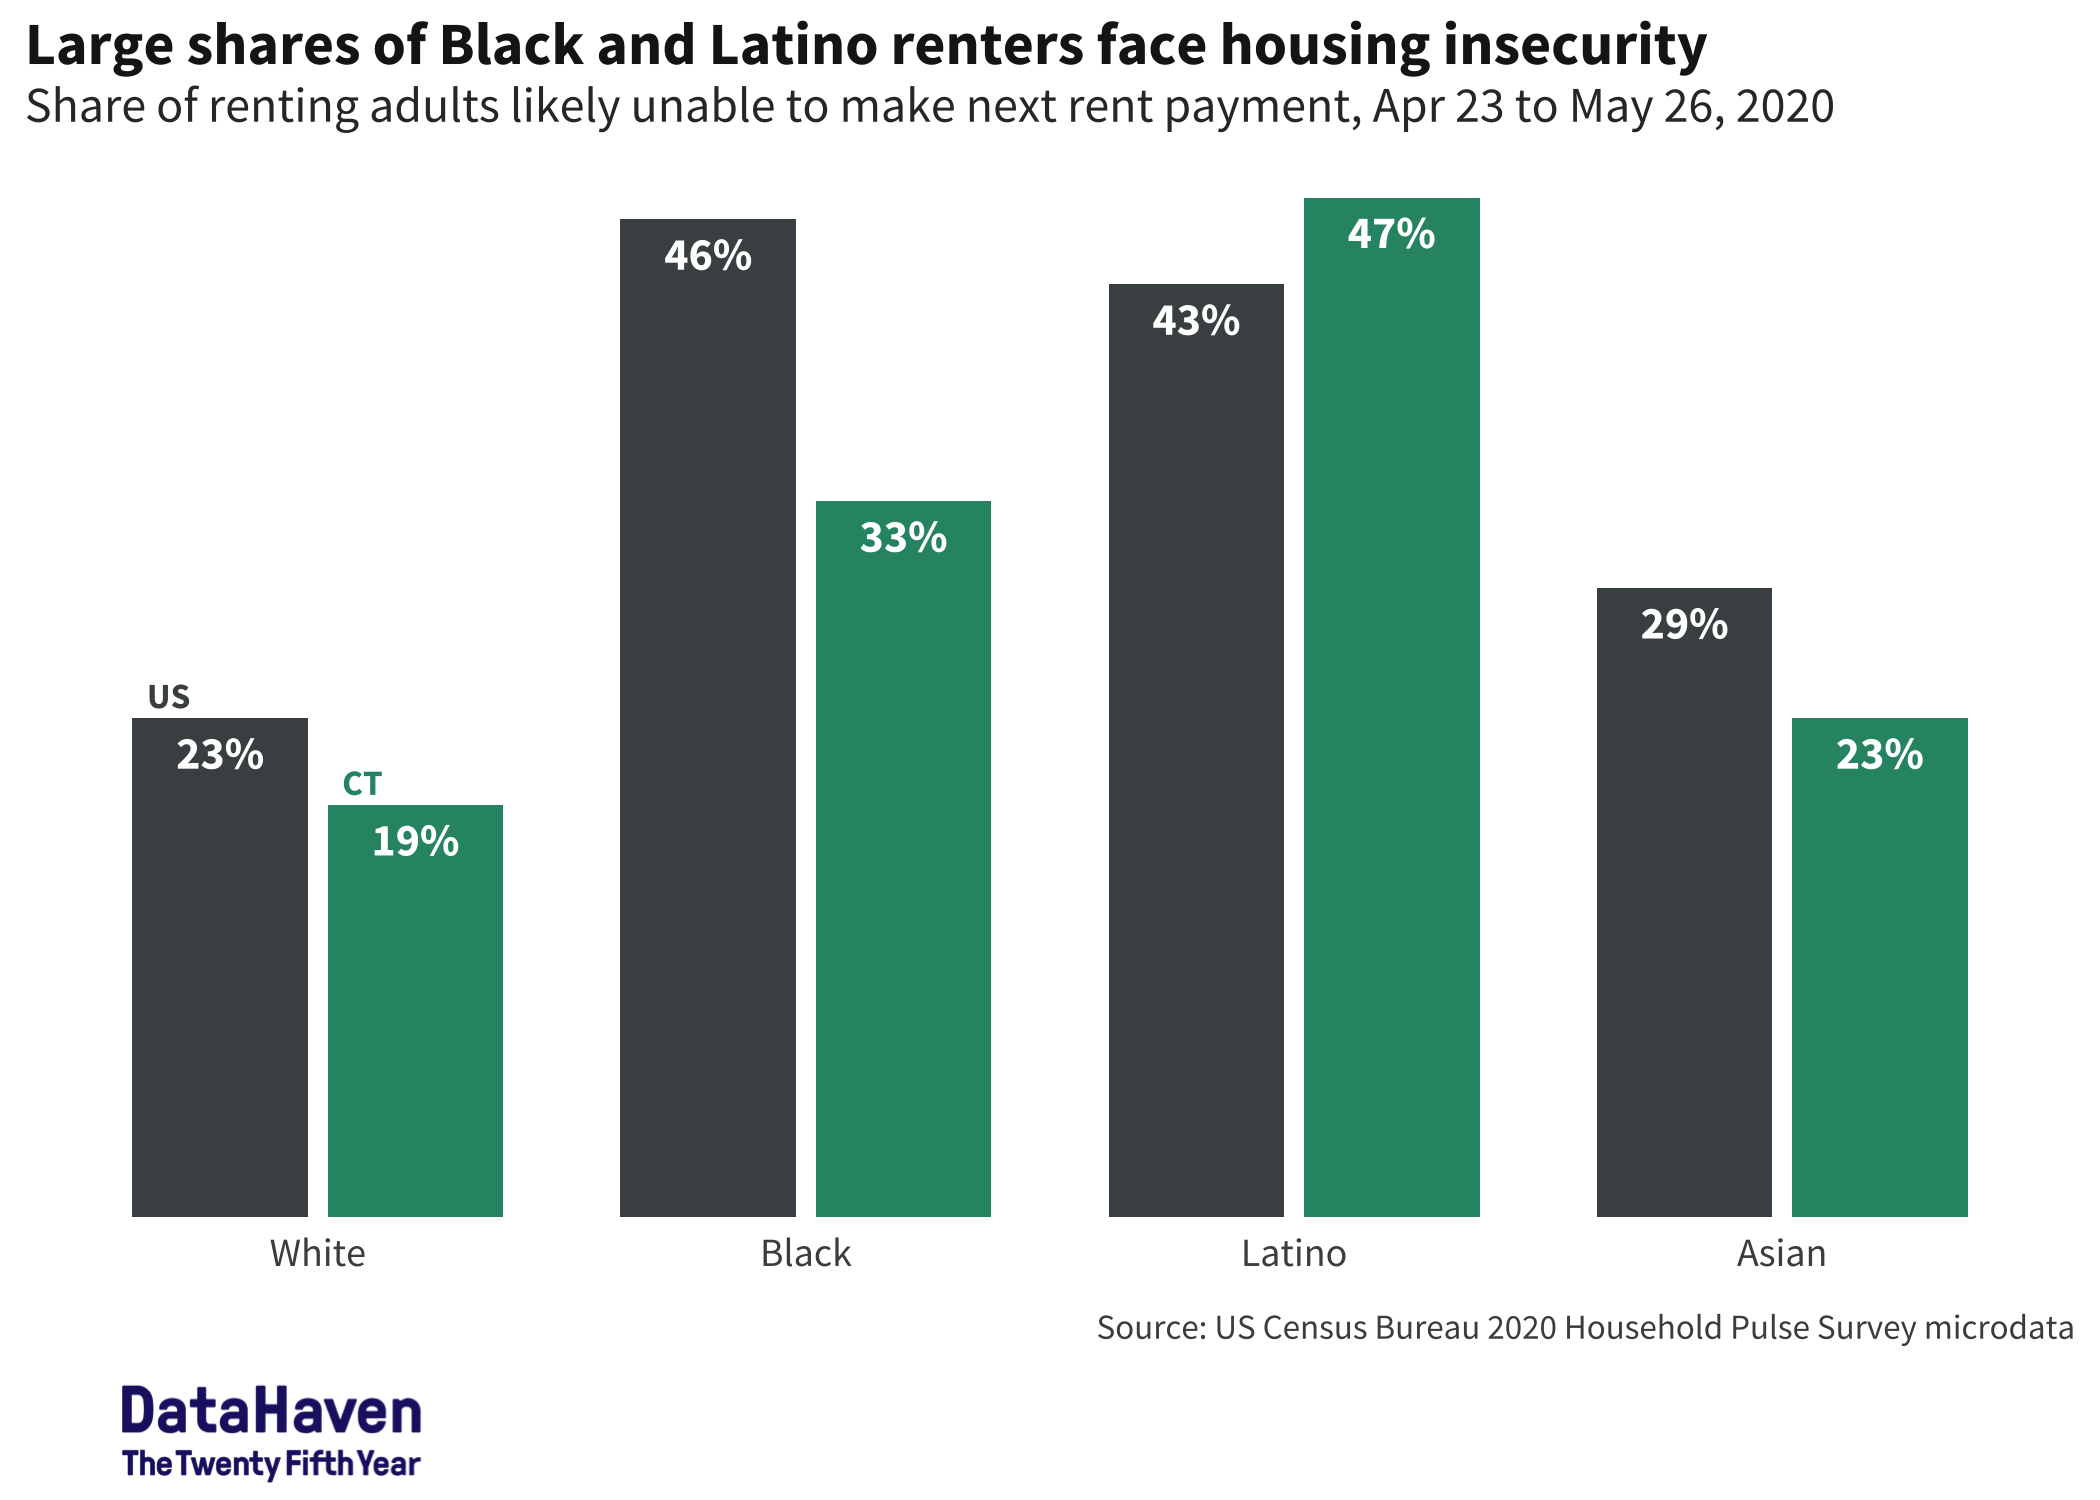 renter housing concern in Census household pulse survey Connecticut COVID data by race and ethnicity DataHaven analysis 2020